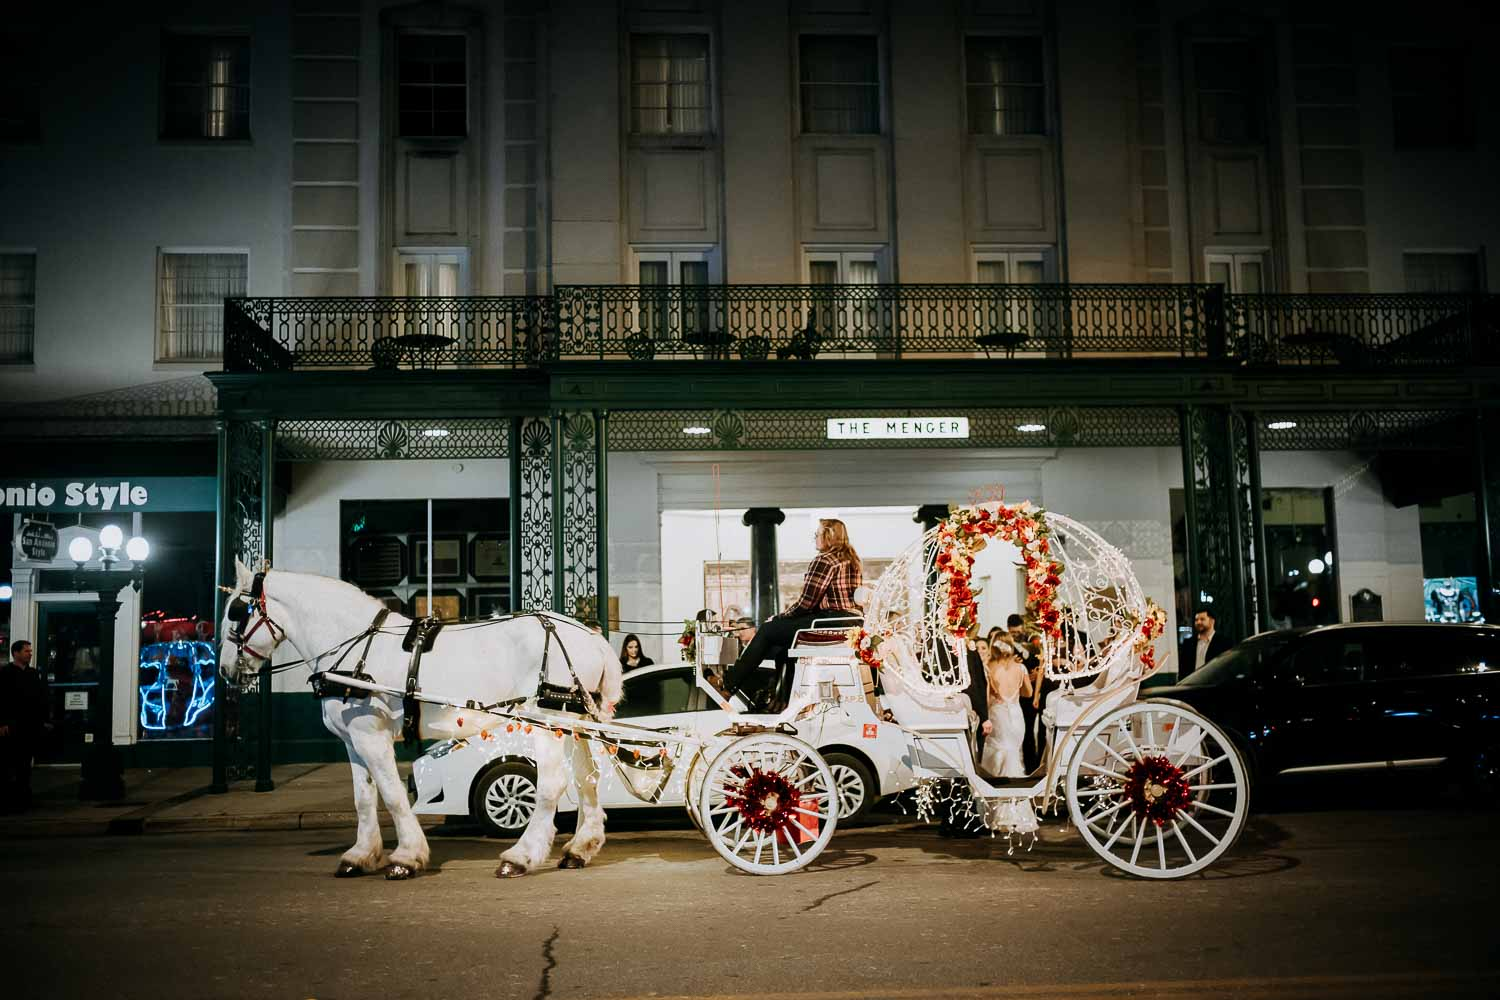 077-Menger Hotel Wedding  Reception Ballroom San Antonio  Reception Grand BallroomSan Antonio -Leica photographer-Philip Thomas Photography